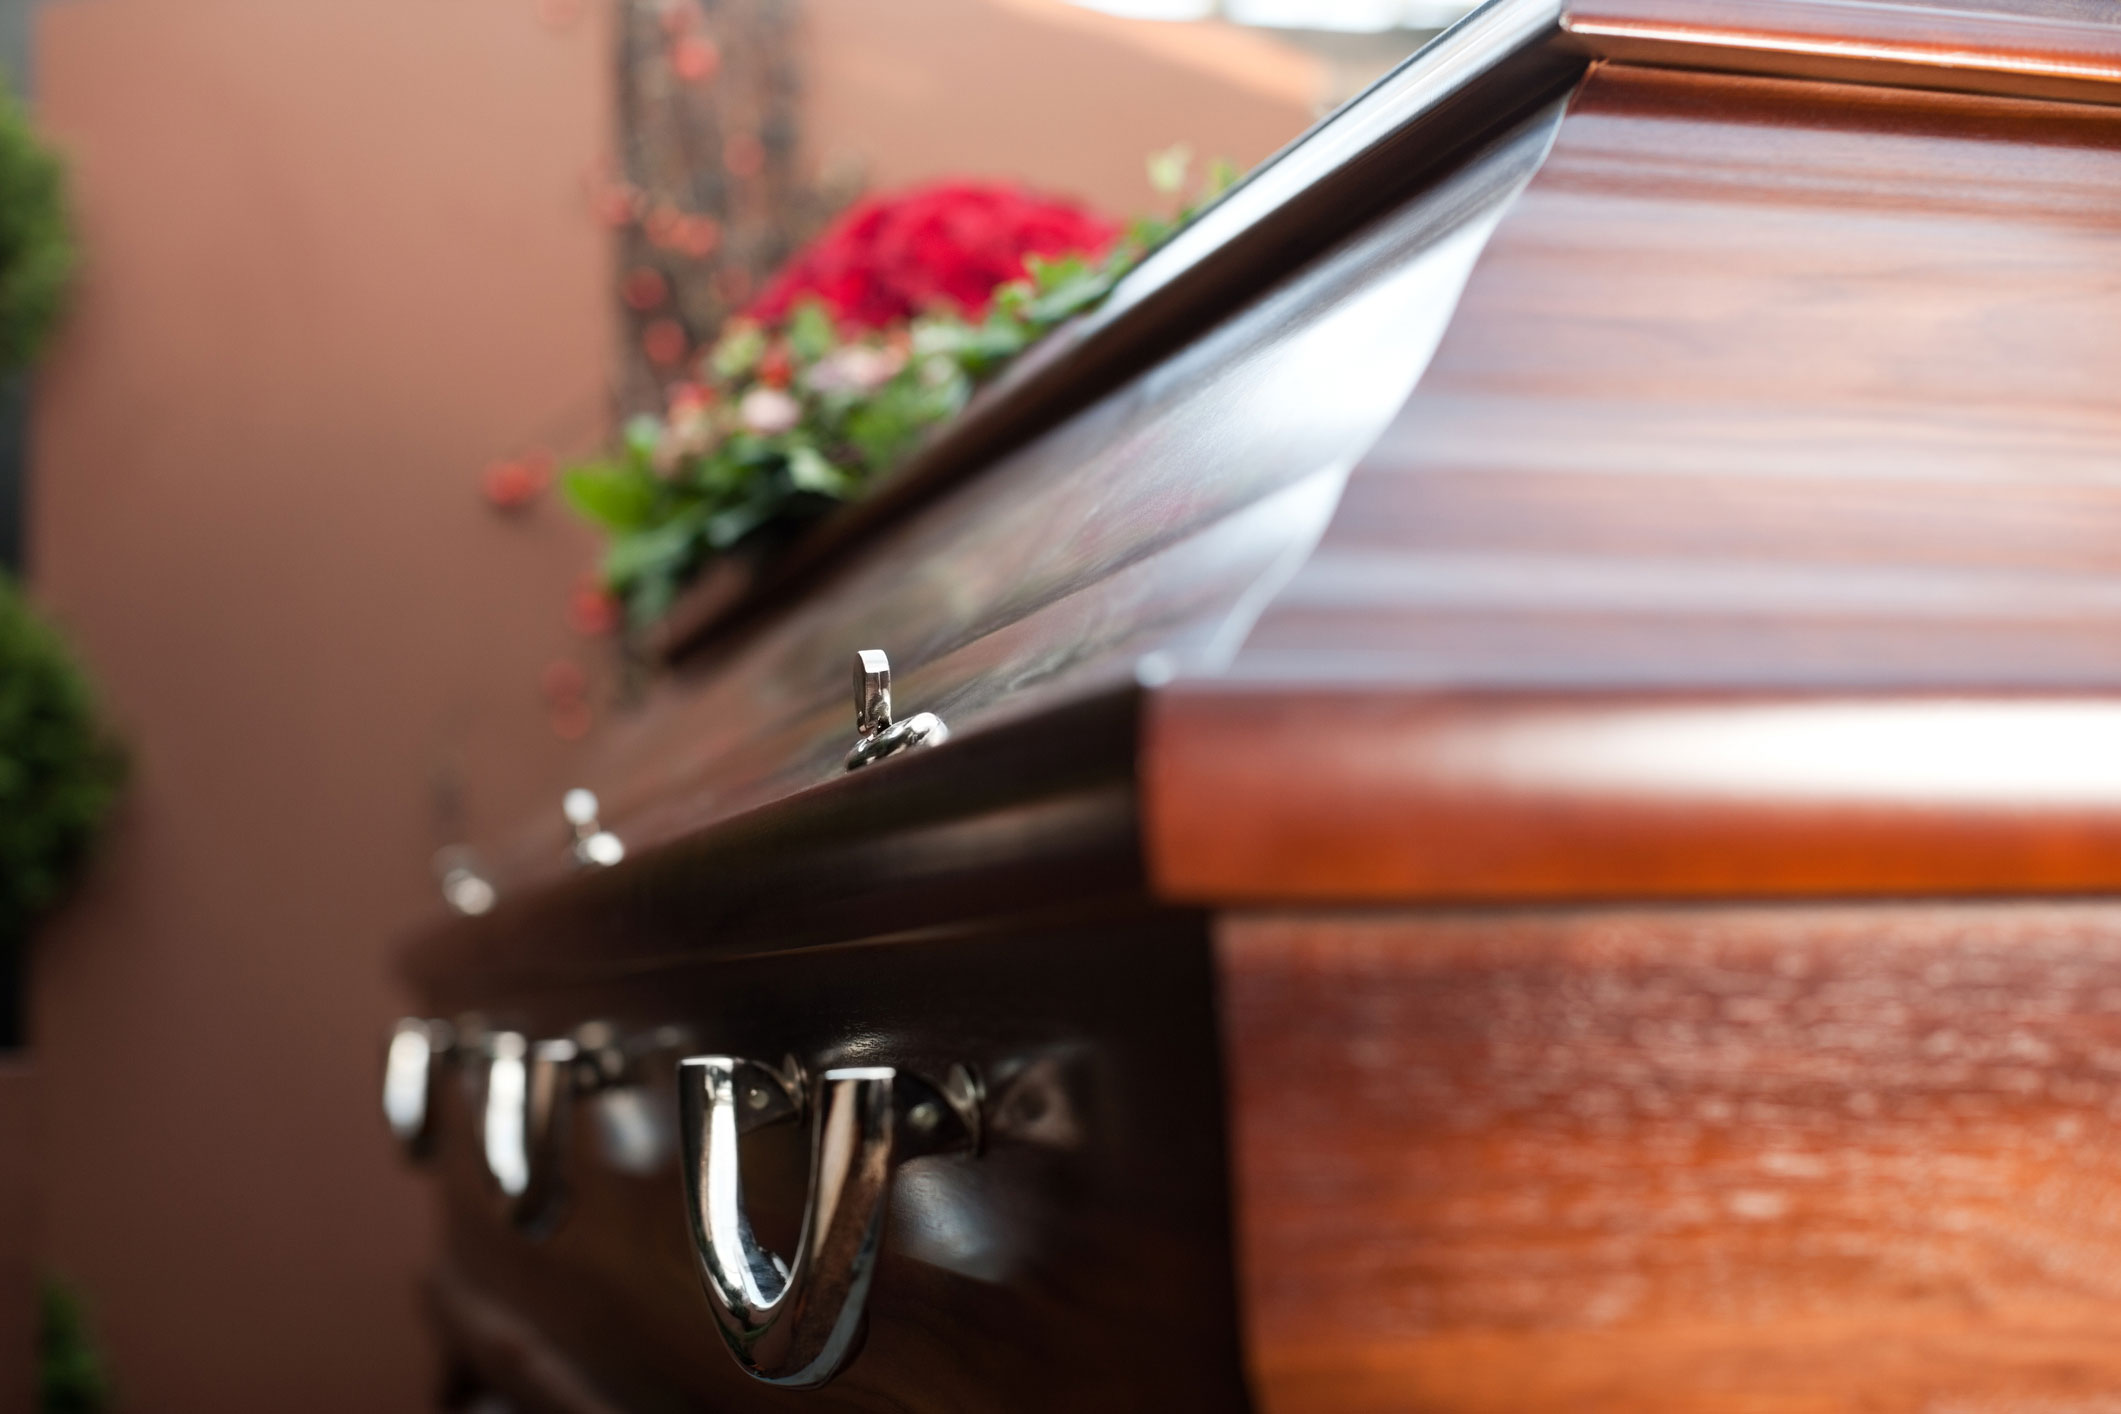 Close-up of a closed casket with red flowers on top